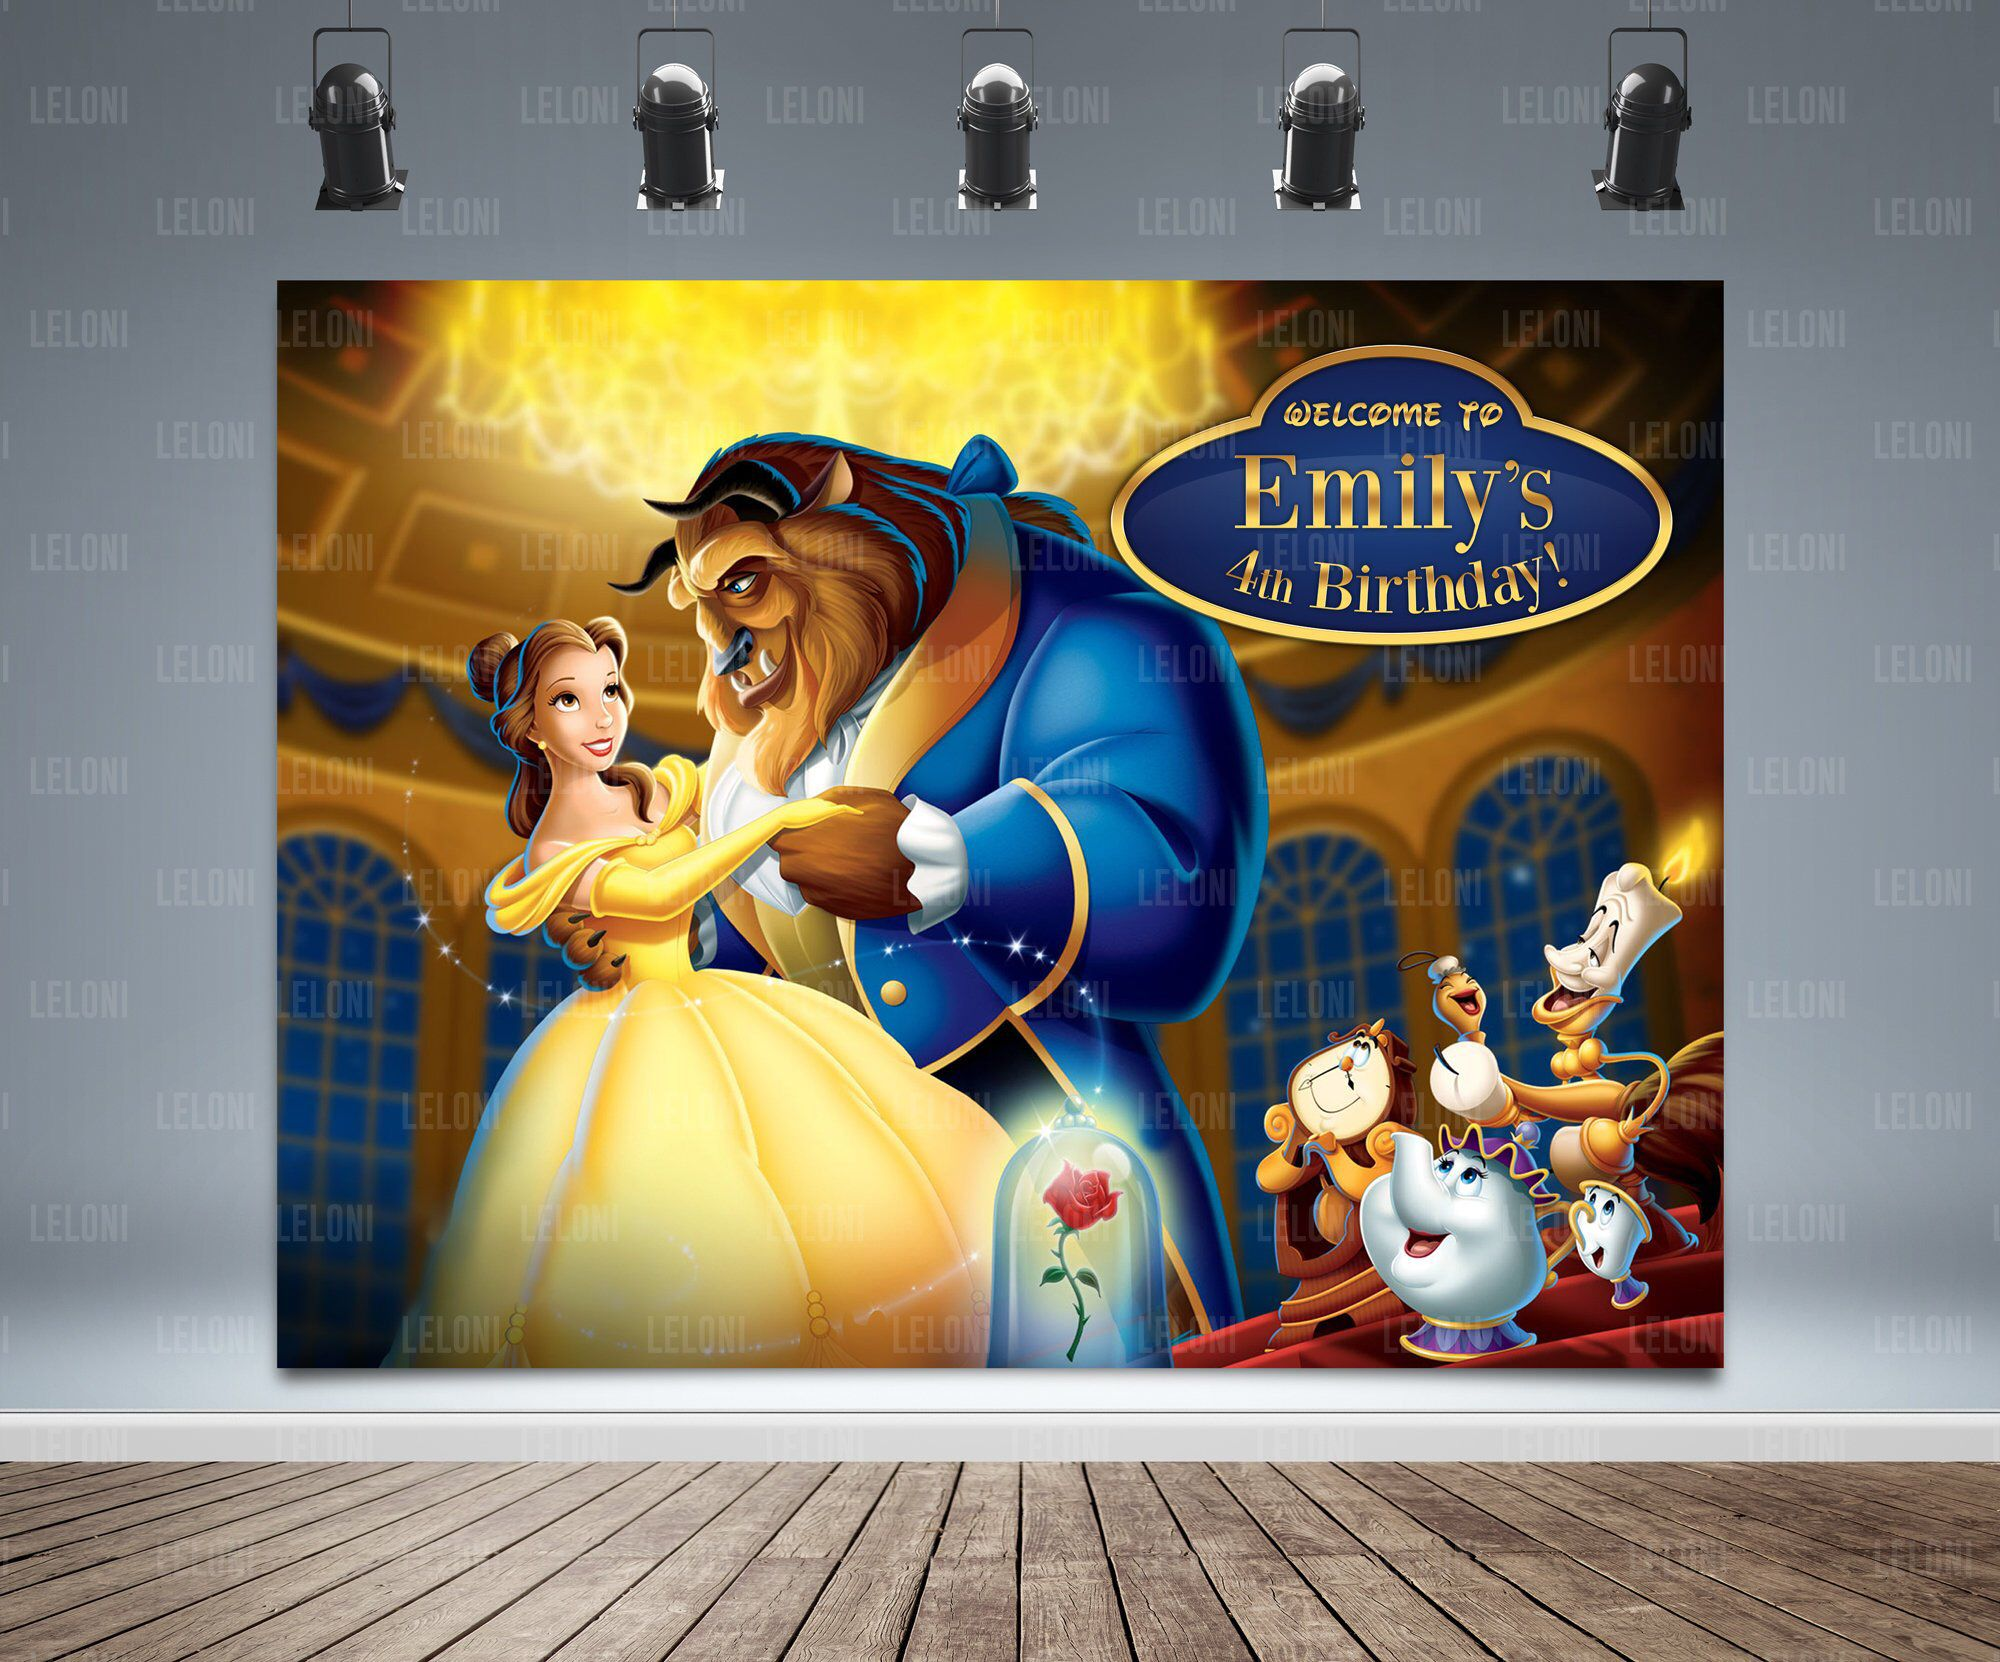 Beauty and the Beast Backdrop Banner, Belle, Beast, Mrs